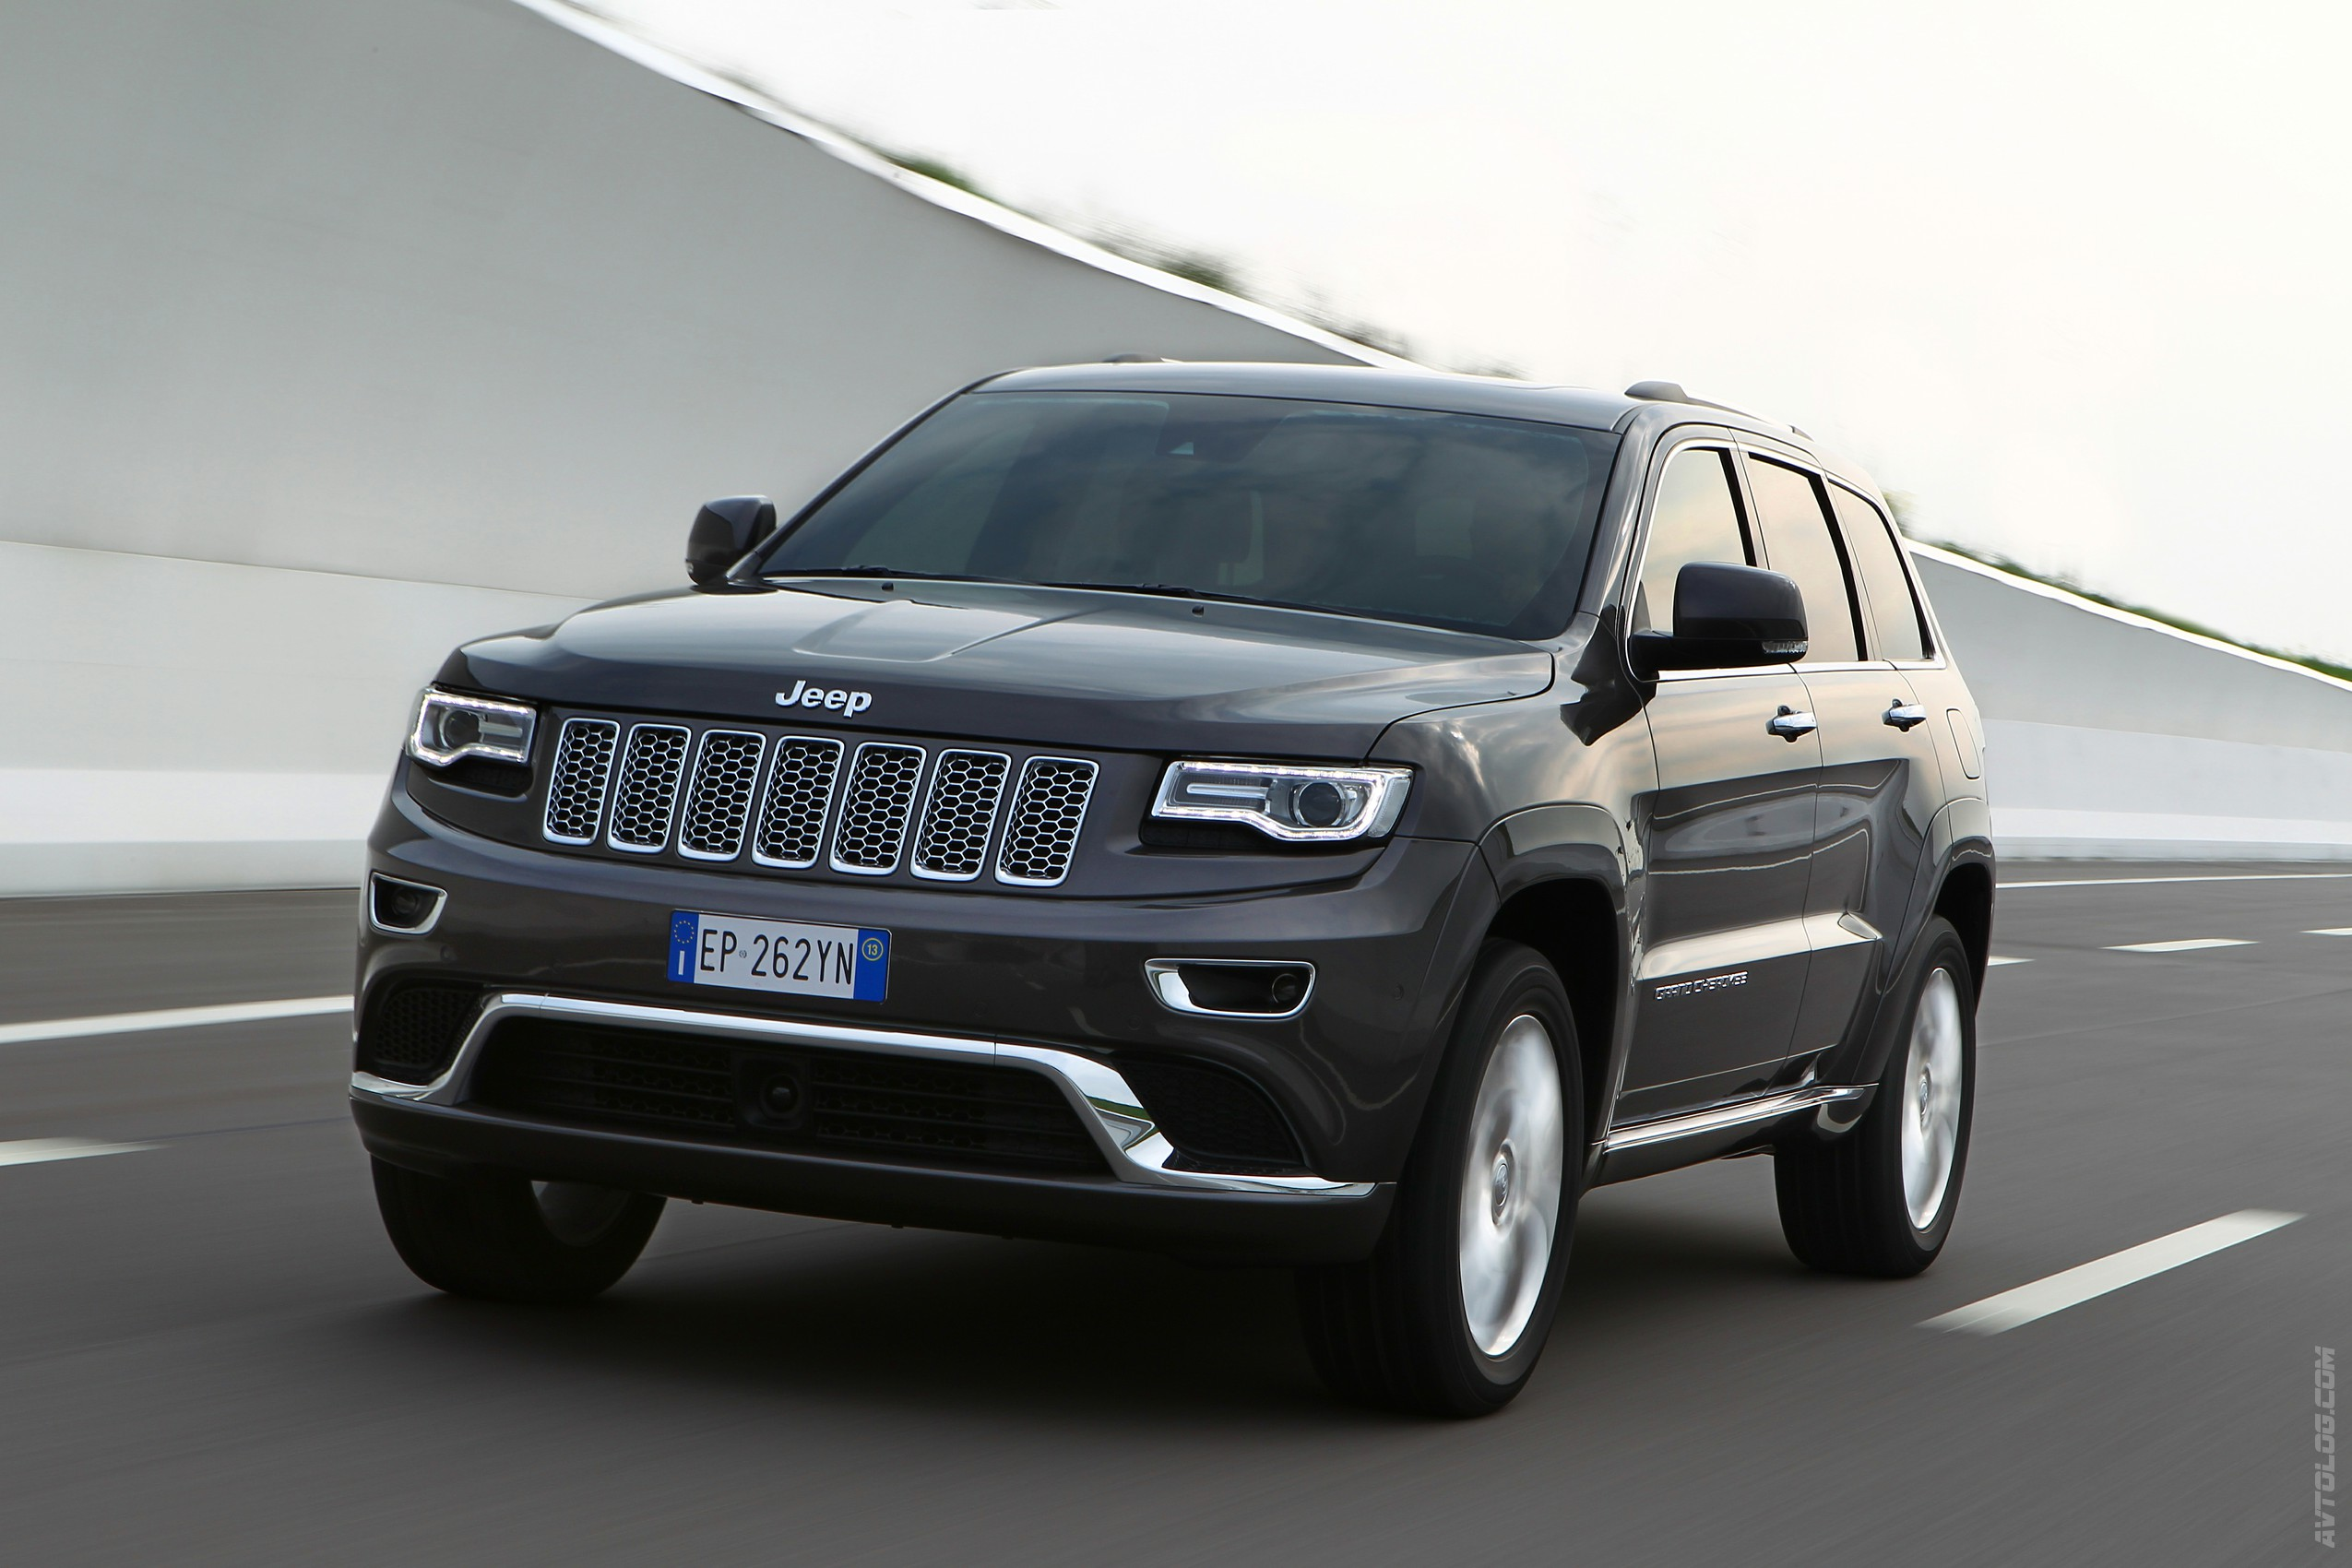 2018 Jeep Cherokee EU Version photo - 3